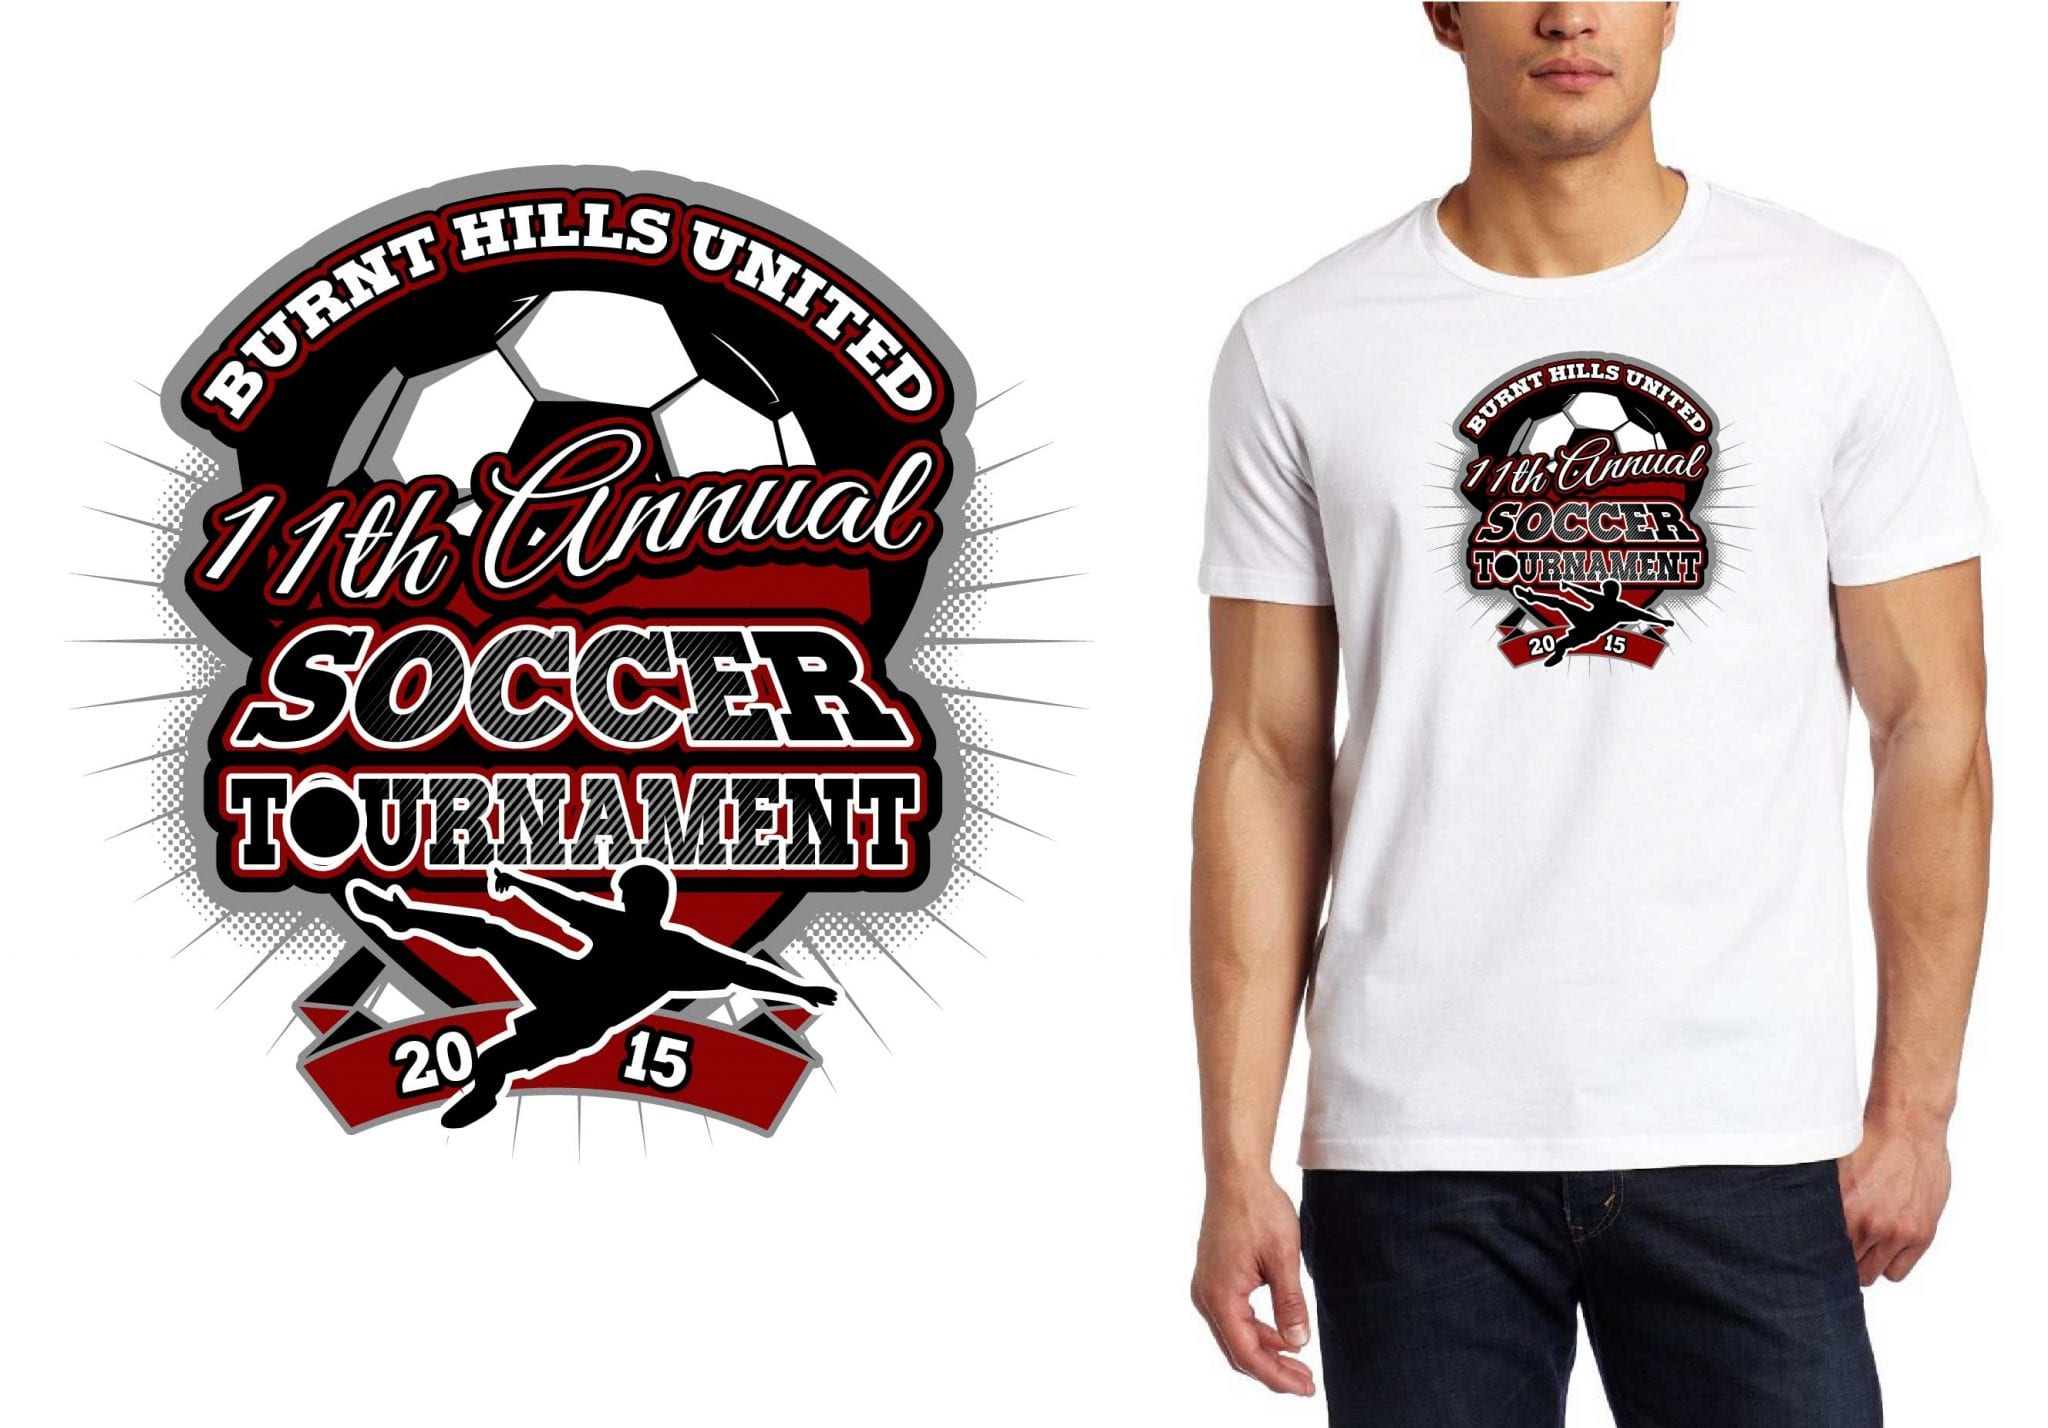 Best T-Shirt Vector logo design for 2015 Burnt Hills United 11th Annual Soccer Tournament